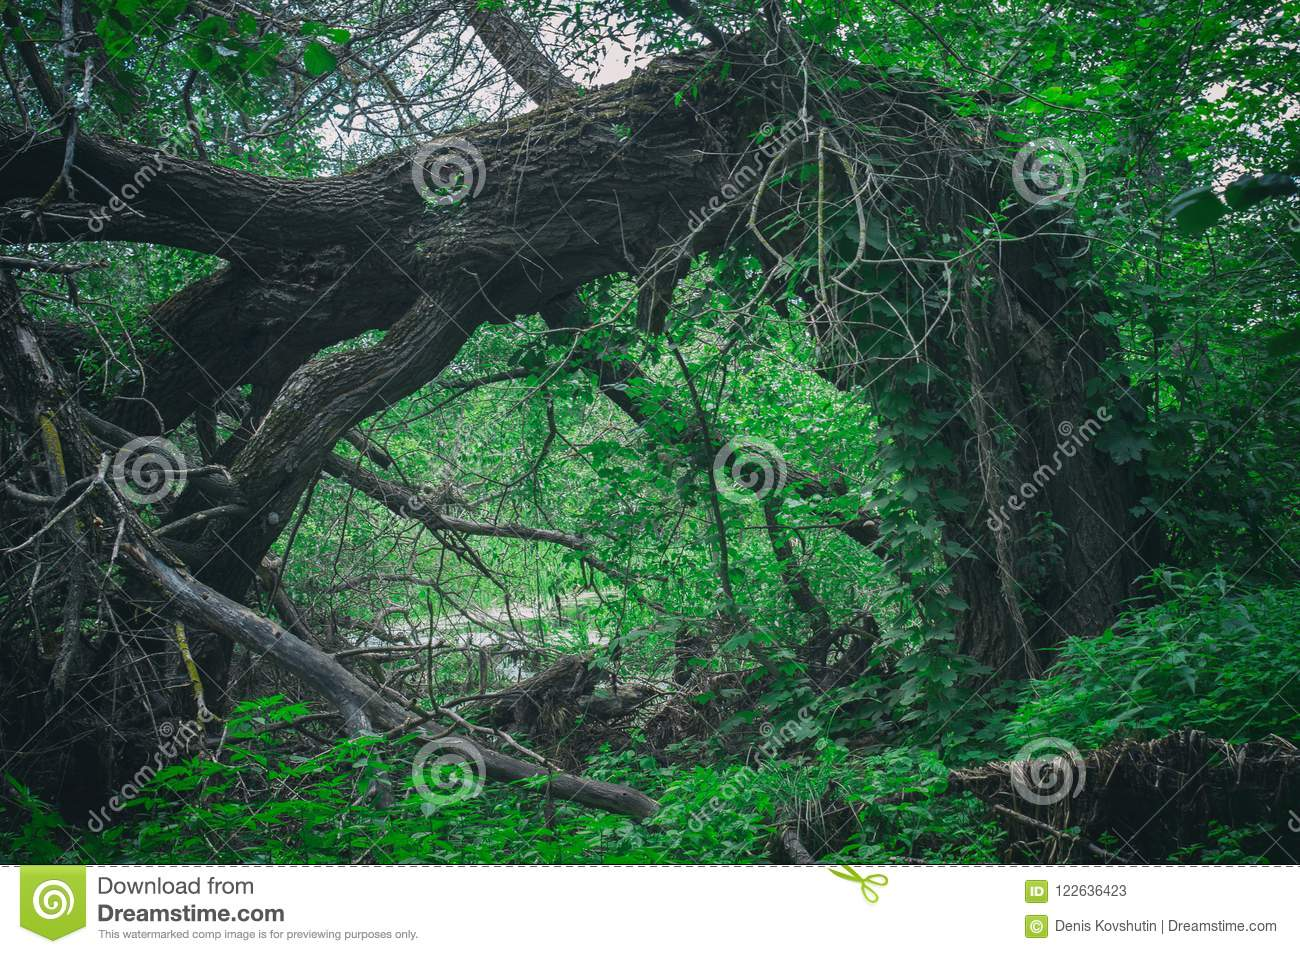 Abnormal frightening scary fallen big tree in a dense forest in the form of a gate. Entrance door to dark forest thicket